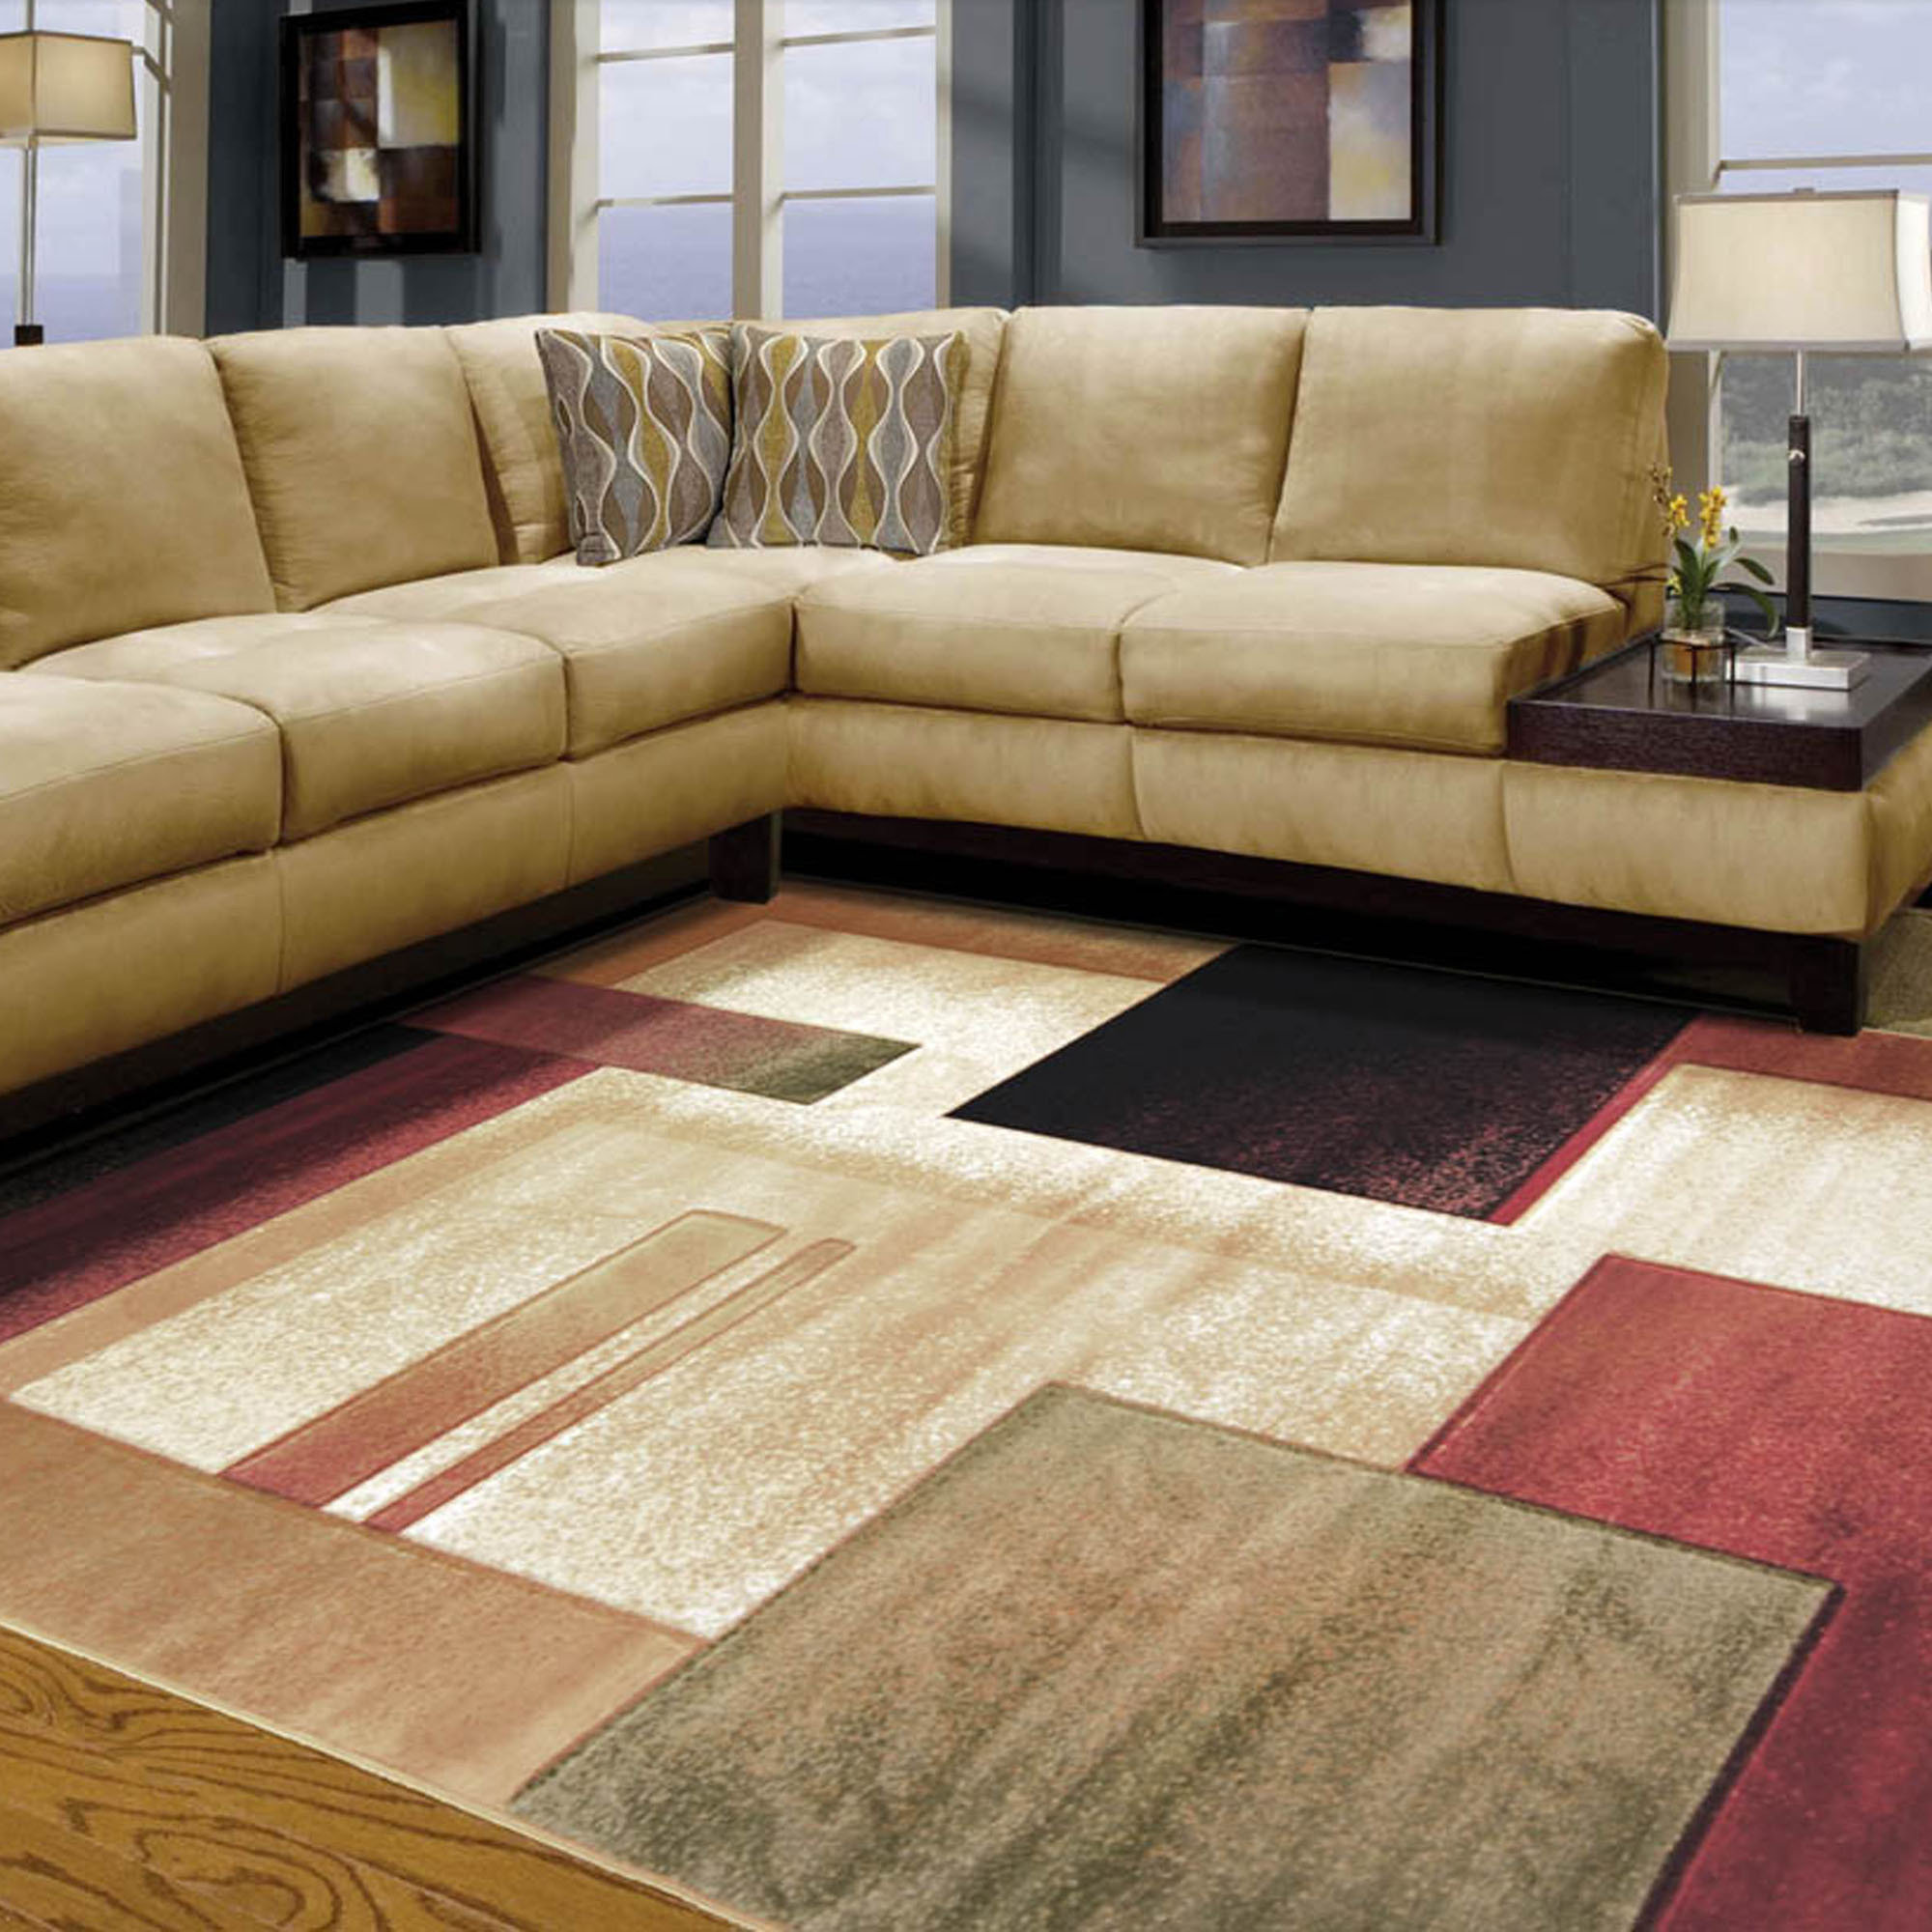 room rugs ... awesome rug design for modern living room ... RTSNOYM